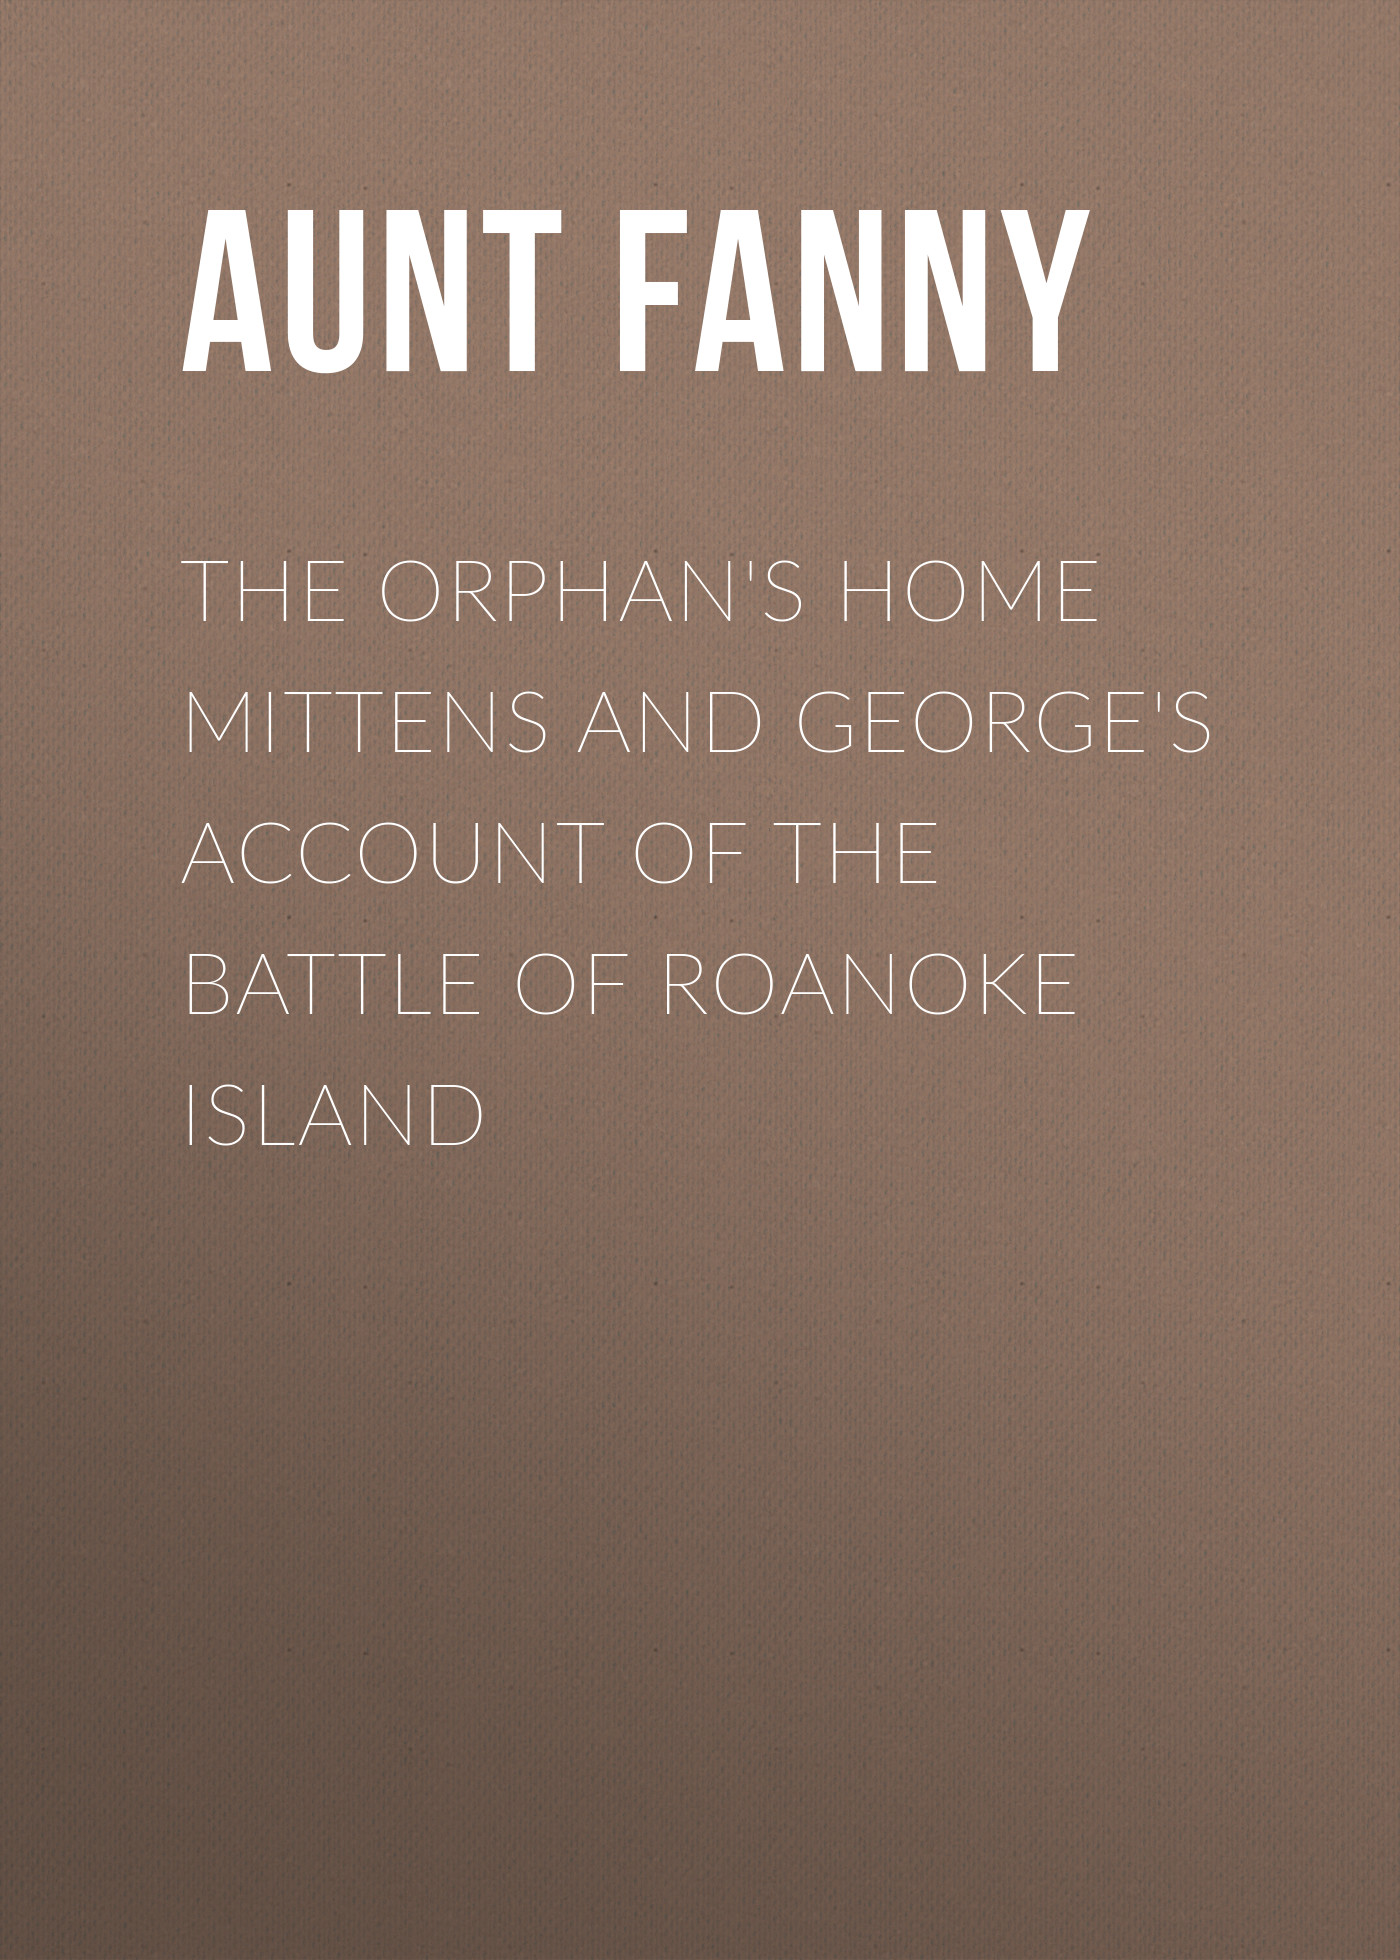 Fanny Aunt The Orphan's Home Mittens and George's Account of the Battle of Roanoke Island